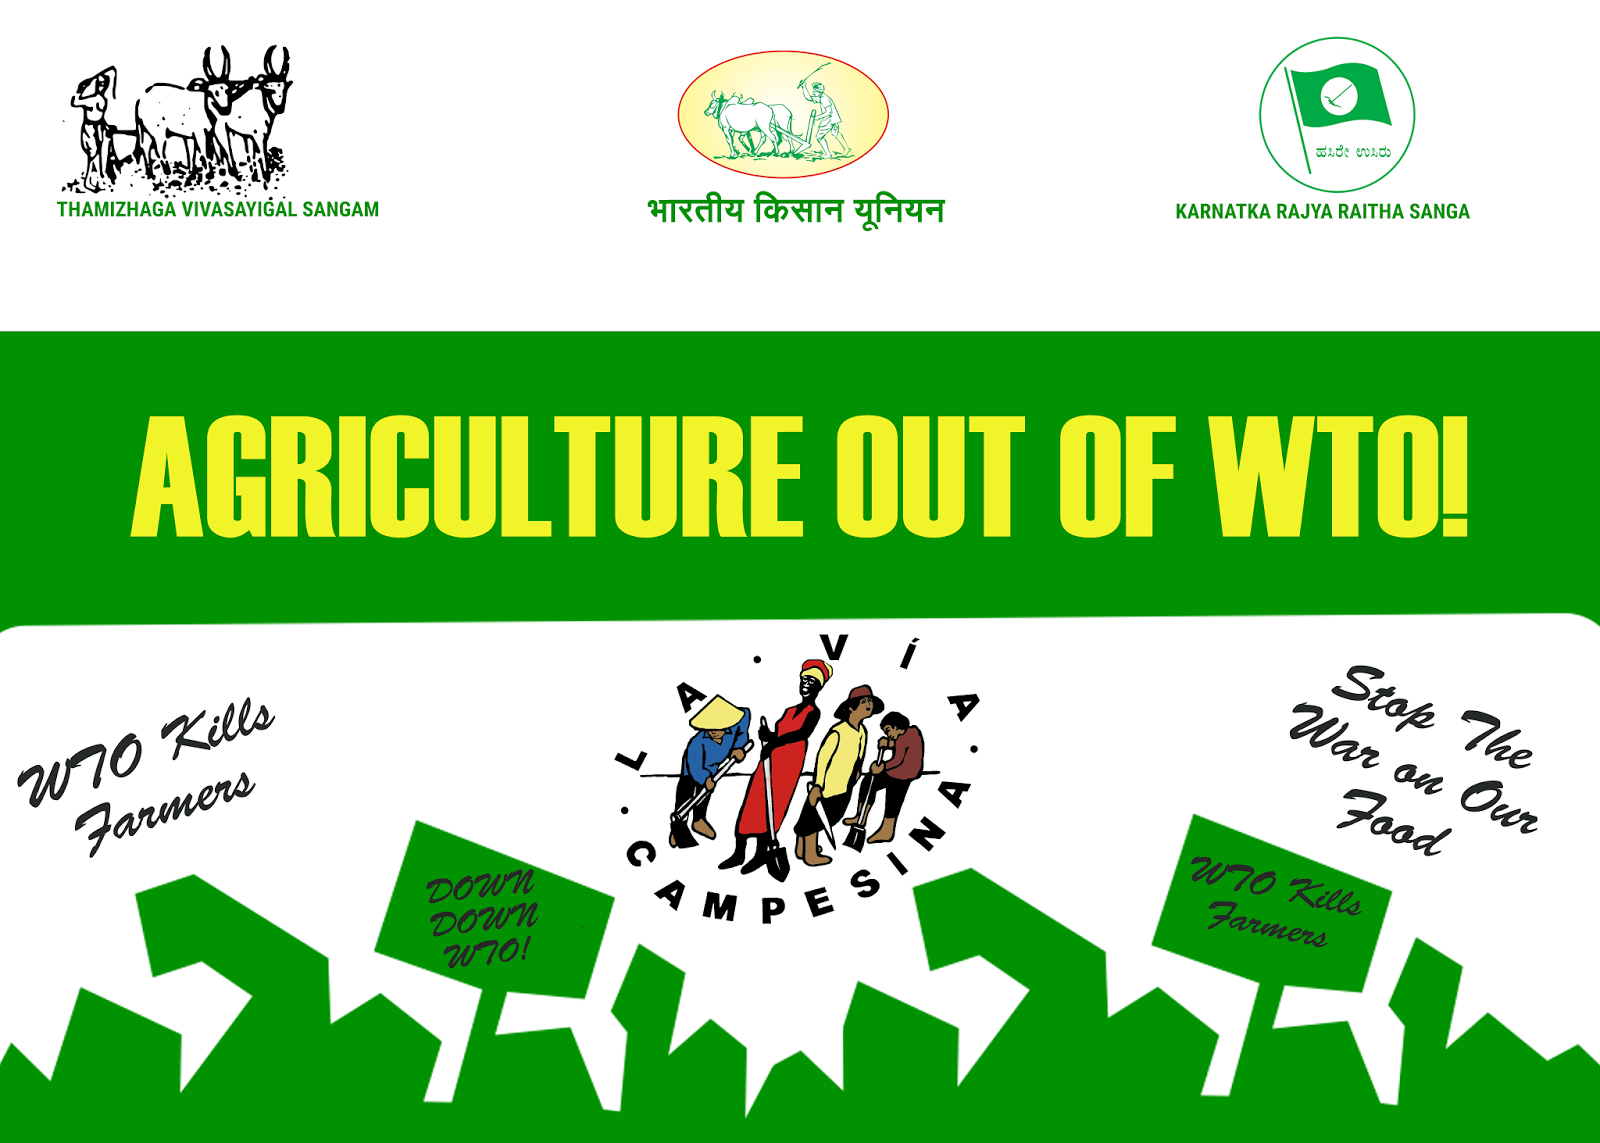 Wto and indian agriculture